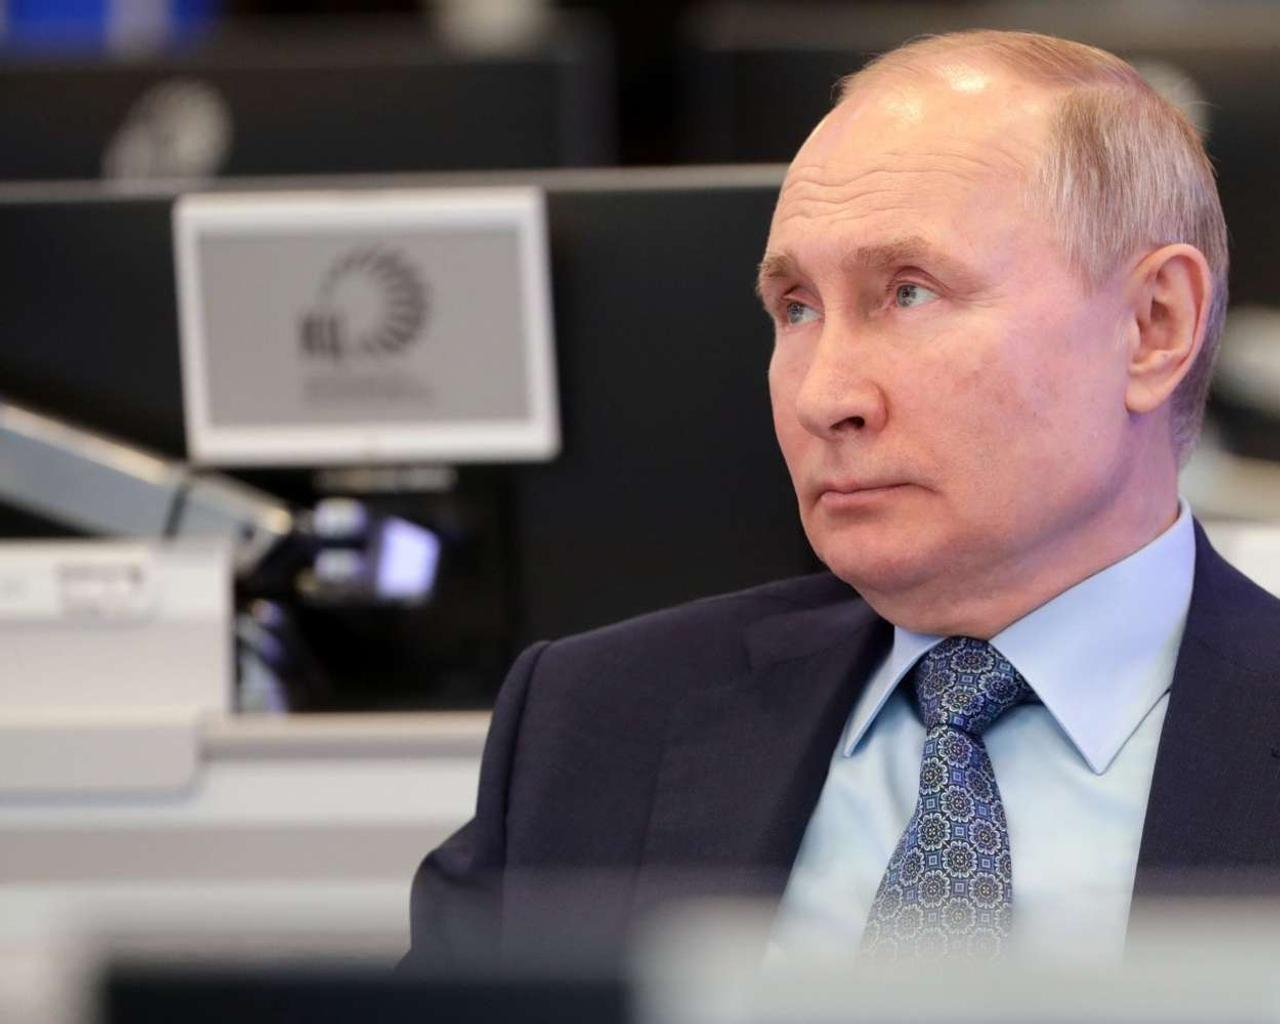 U.S. to sanction Russia over 2020 election interference, SolarWinds hack